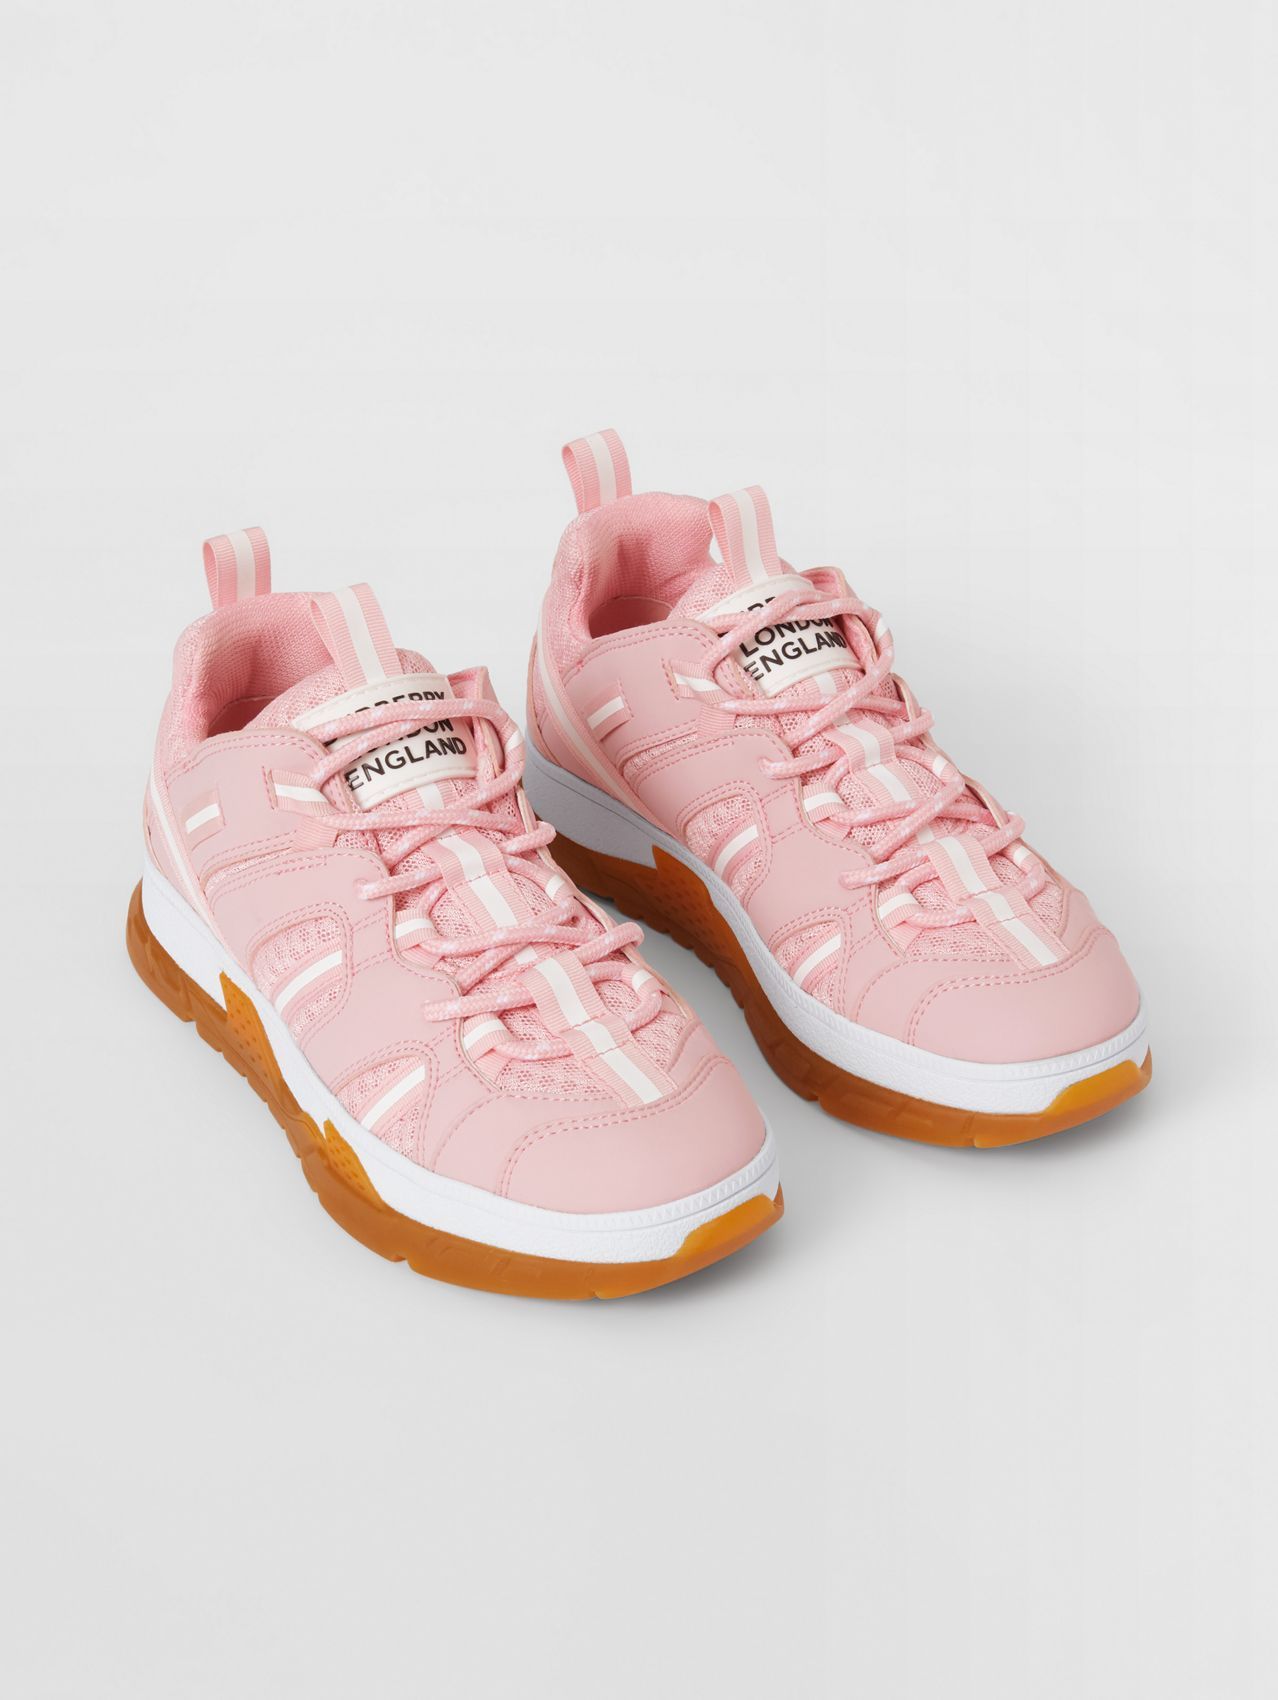 Nylon and Mesh Union Sneakers (Candy Pink)